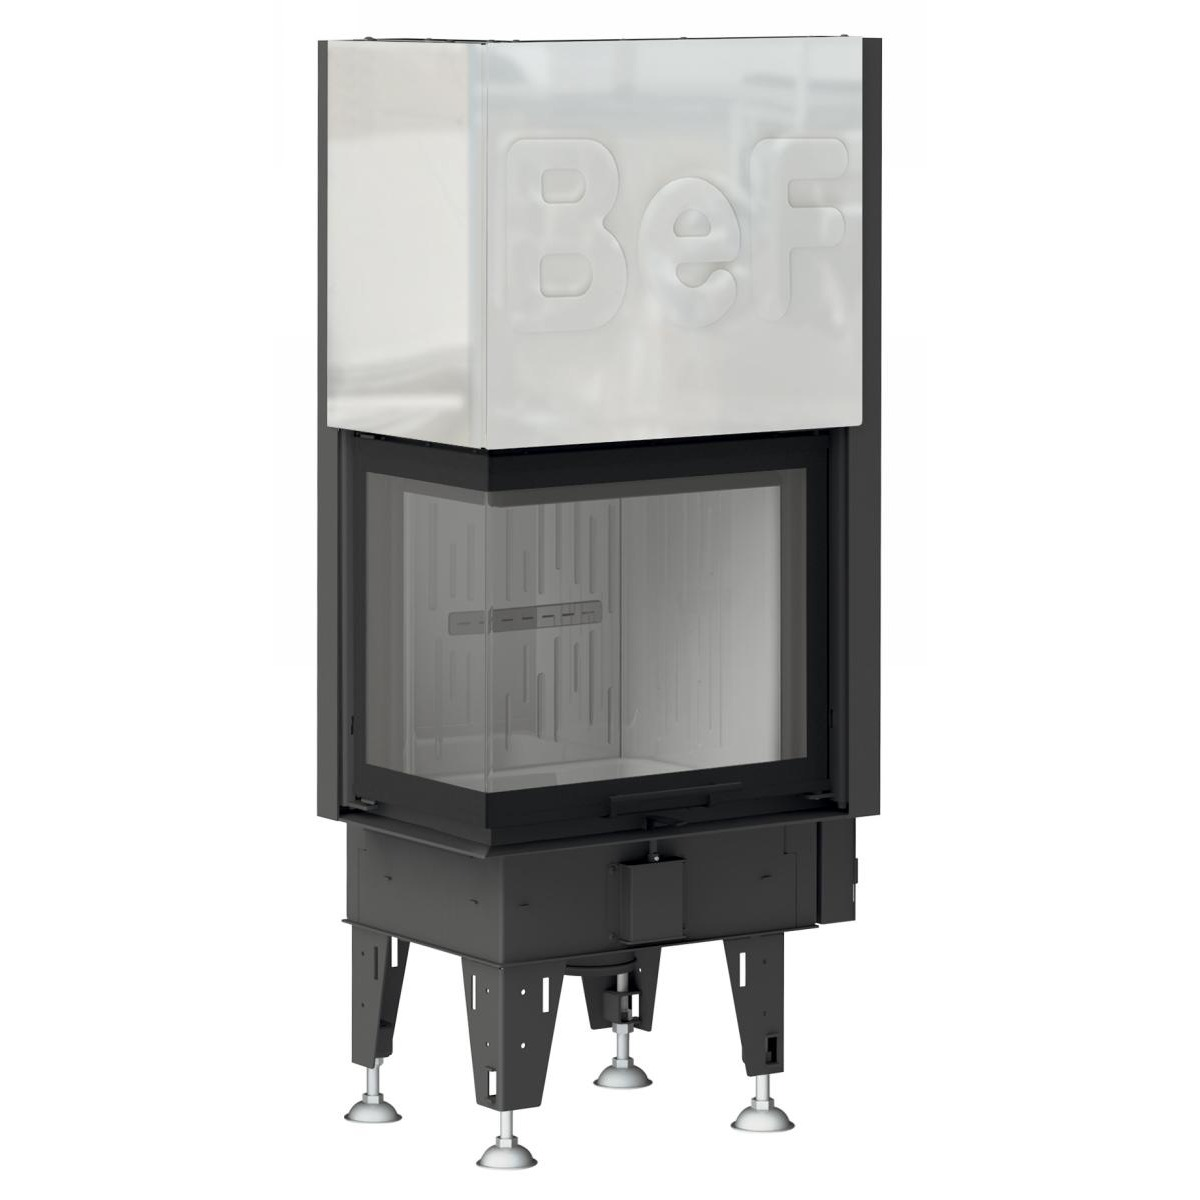 BeF Aquatic WH V 65 CL boiler fireplace insert